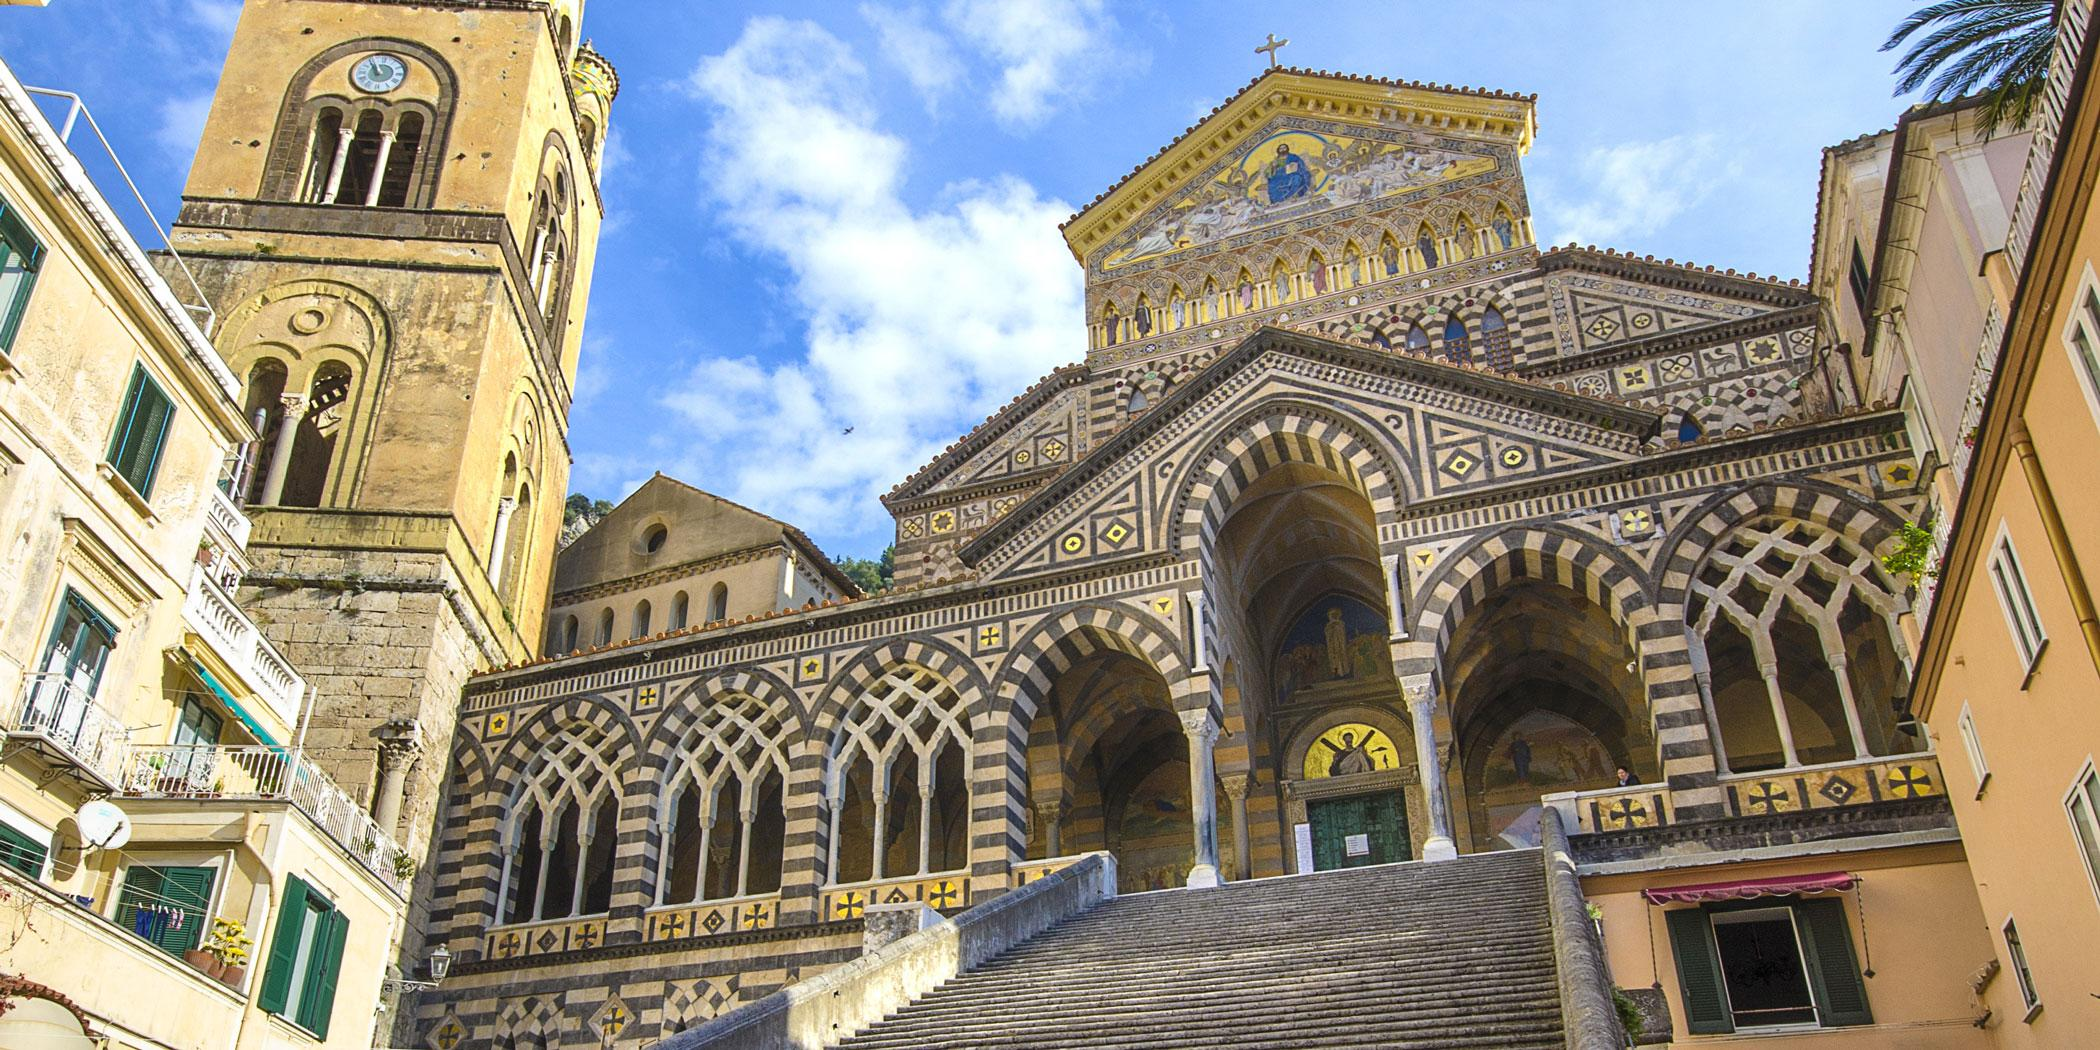 Cathedral of St. Andrew, Amalfi. Photo: Adobe Stock